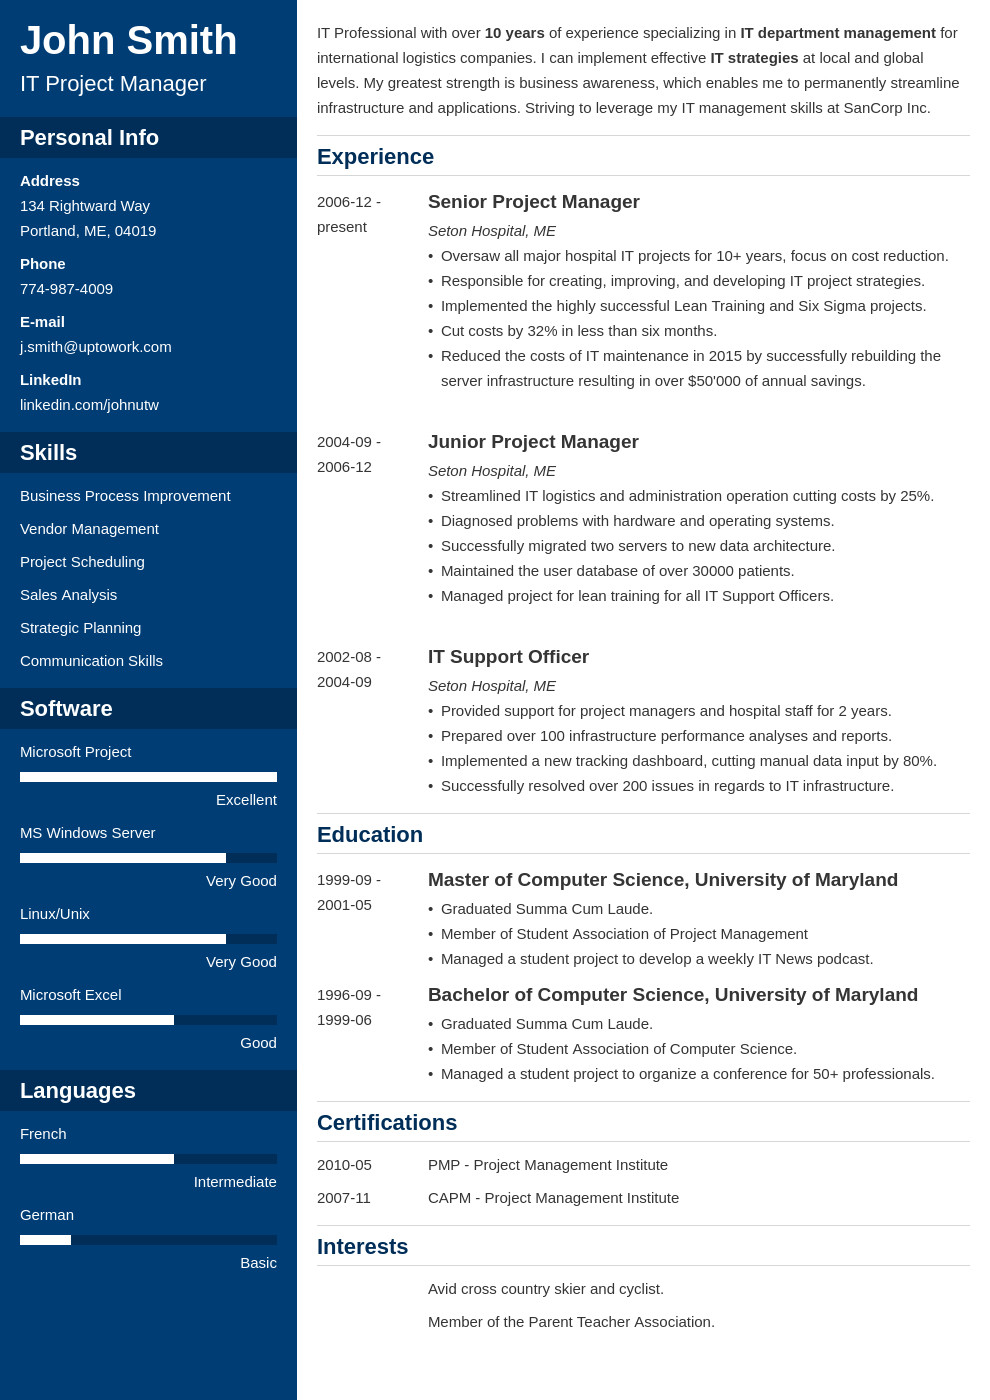 Free Download Resume Templates 20 Resume Templates [download] Create Your Resume In 5